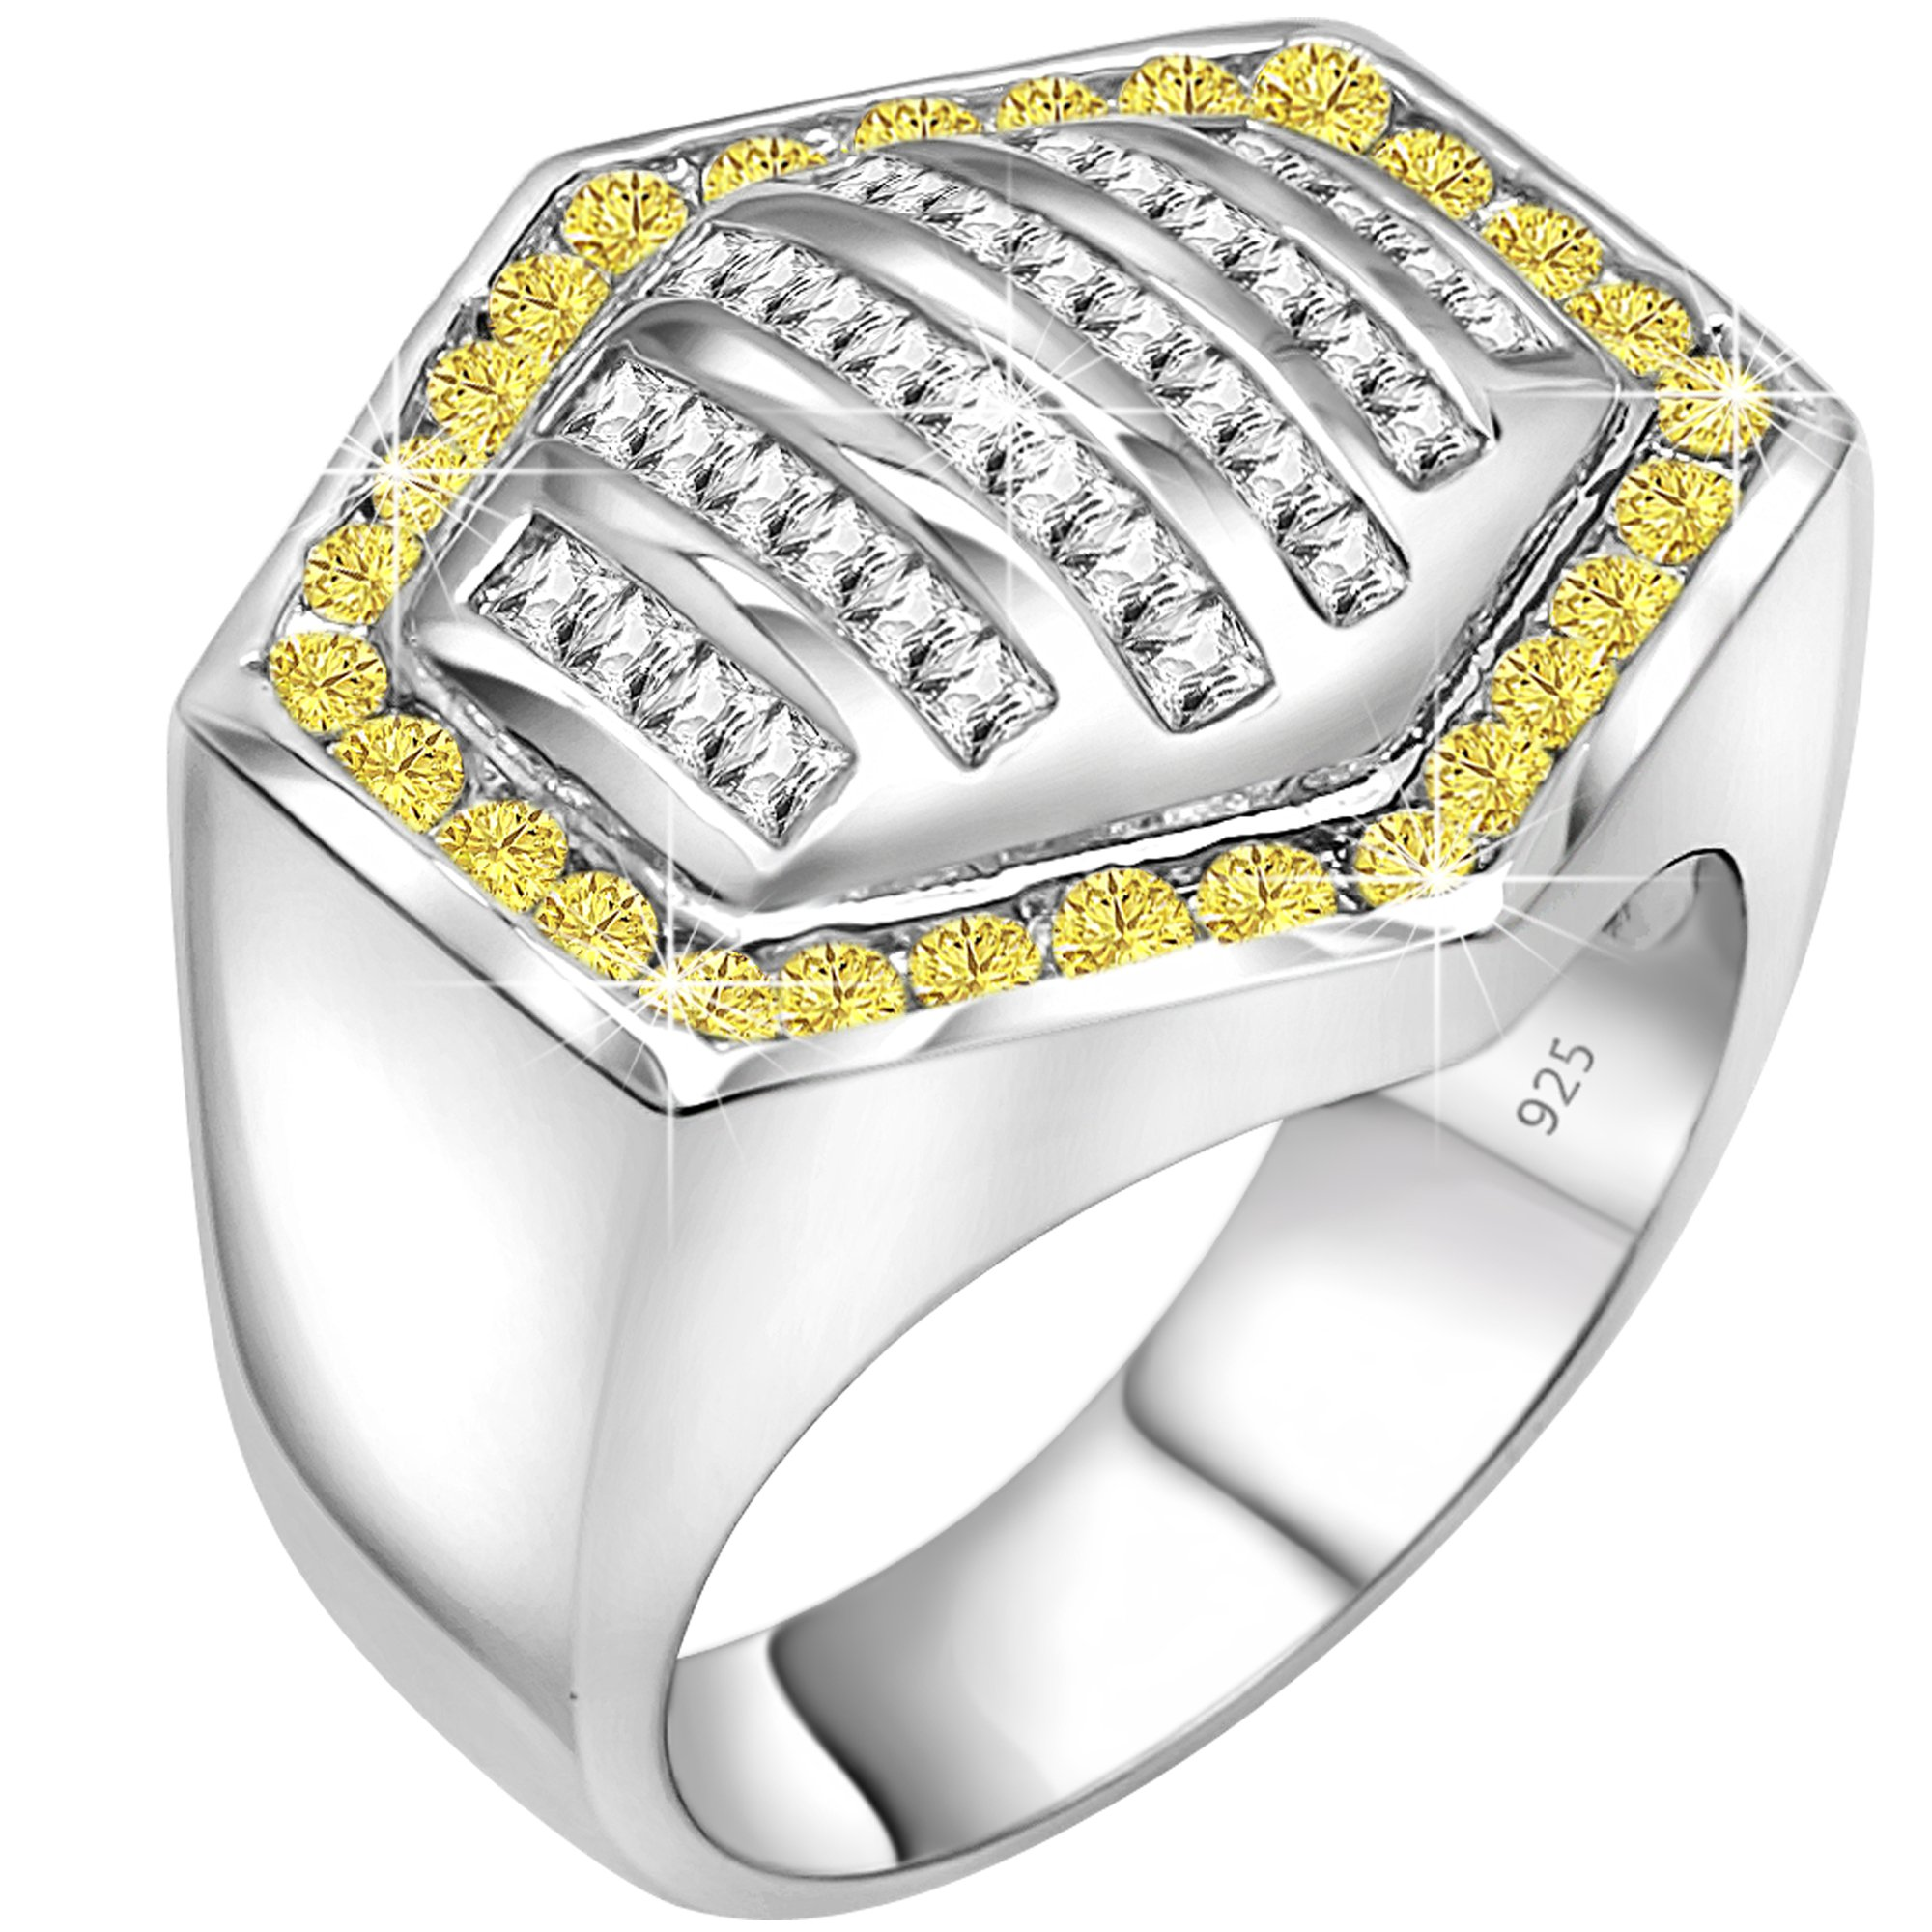 Men's Sterling Silver .925 Hexagonal Ring Featuring 64 White and Canary Yellow Round and Baguette Cubic Zirconia (CZ) Stones, Platinum Plated Jewelry (14)